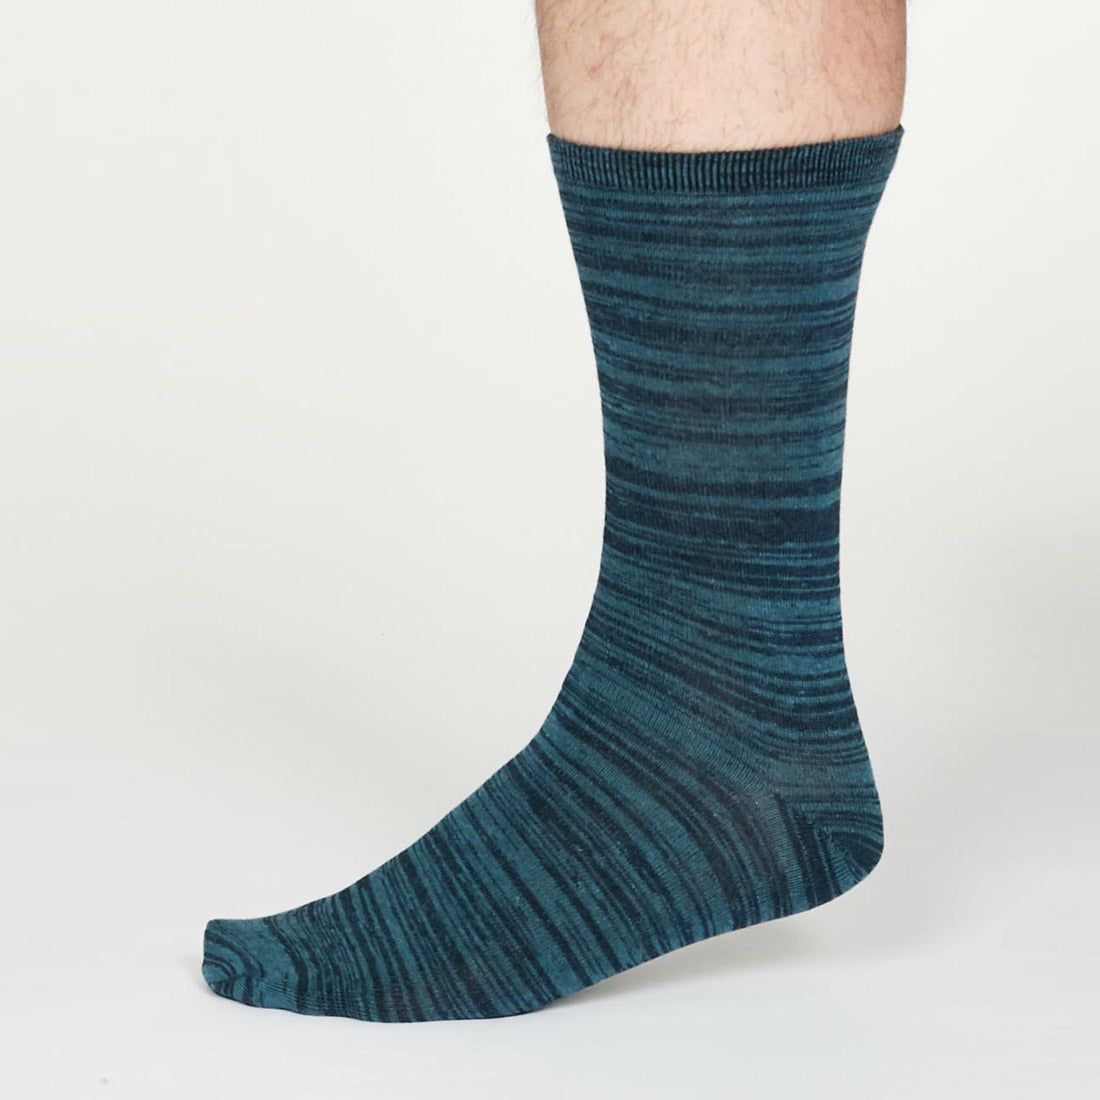 Bambus Herrensocken – Space dye